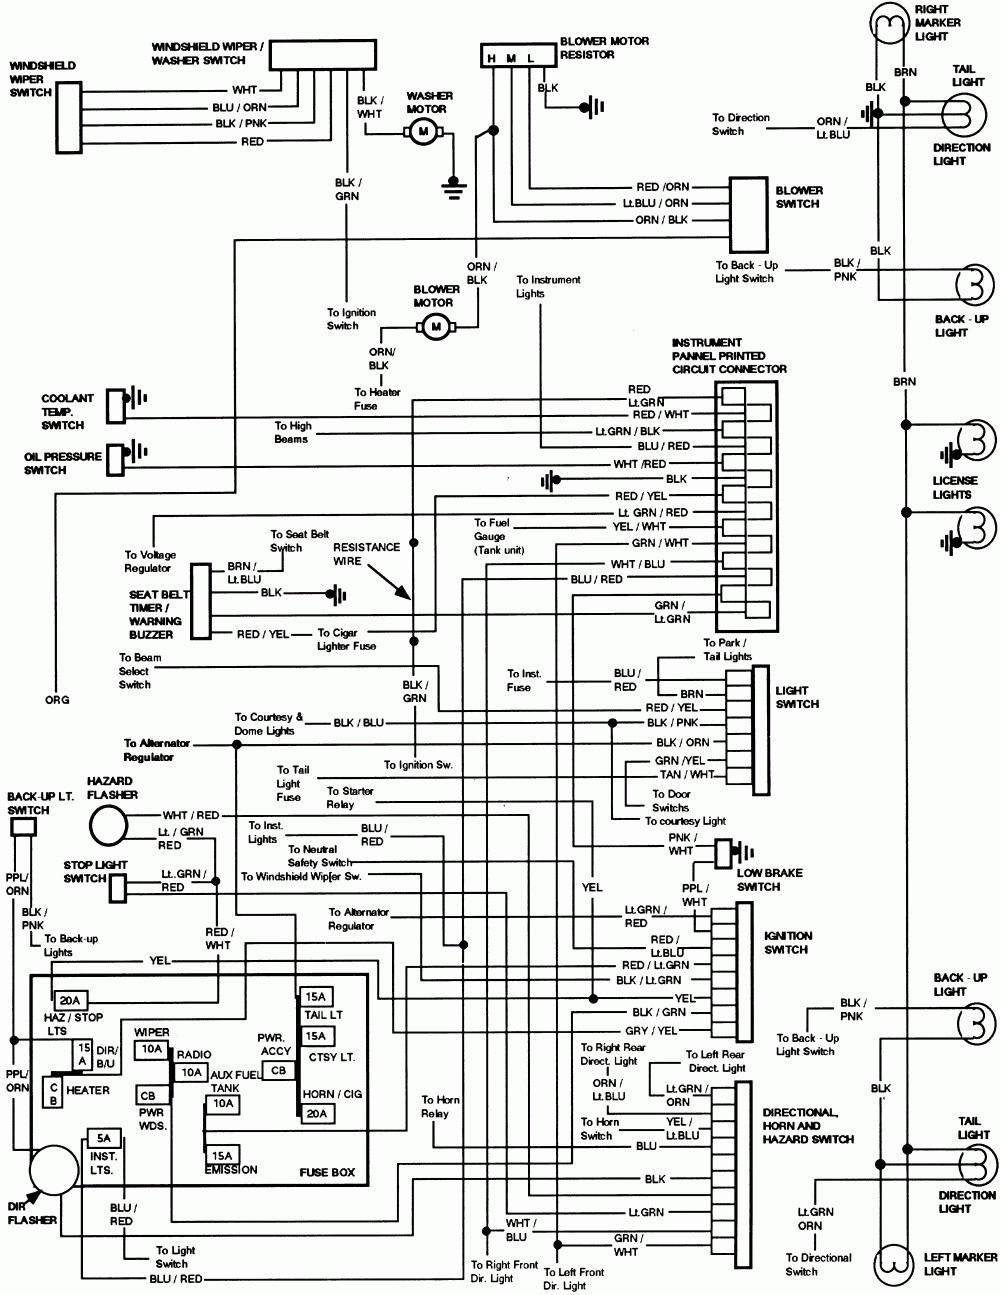 hight resolution of ford flex wiring diagram wiring diagram third level ford fairlane wiring diagram ford flex wiring diagram